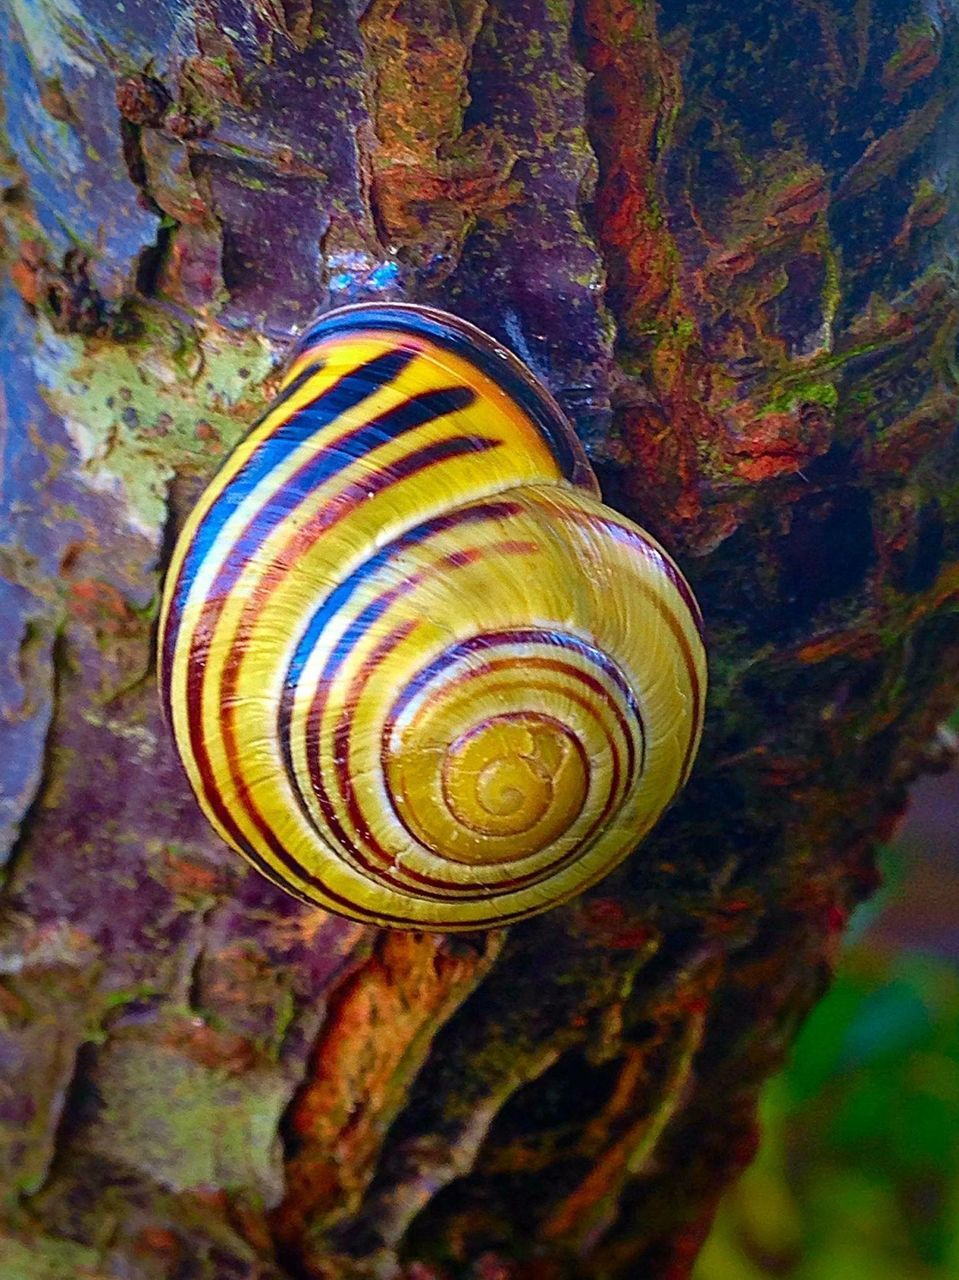 nature, snail, wildlife, animal themes, one animal, spiral, animals in the wild, gastropod, close-up, beauty in nature, no people, day, fragility, outdoors